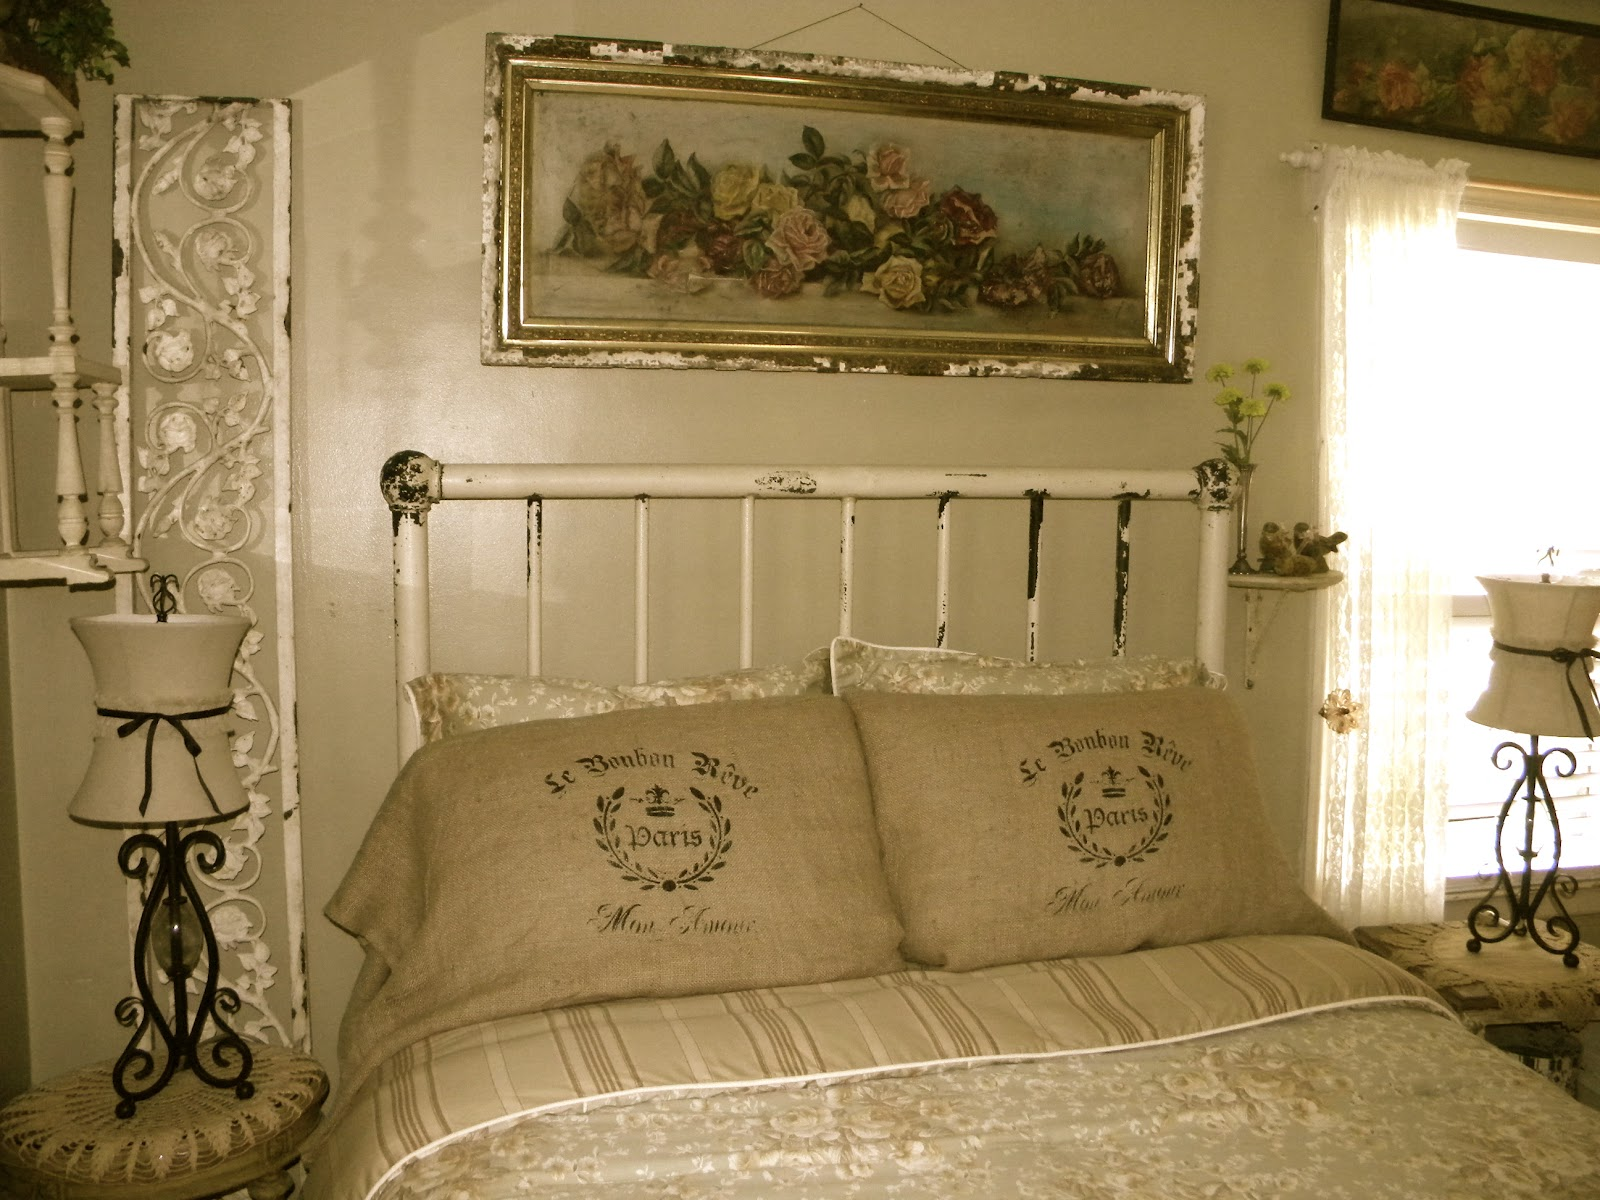 Peaceful Bedrooms Hung With Rosies Paintings : Peaceful Bedrooms Hung With Rosies Paintings : Antique Iron Bed ...